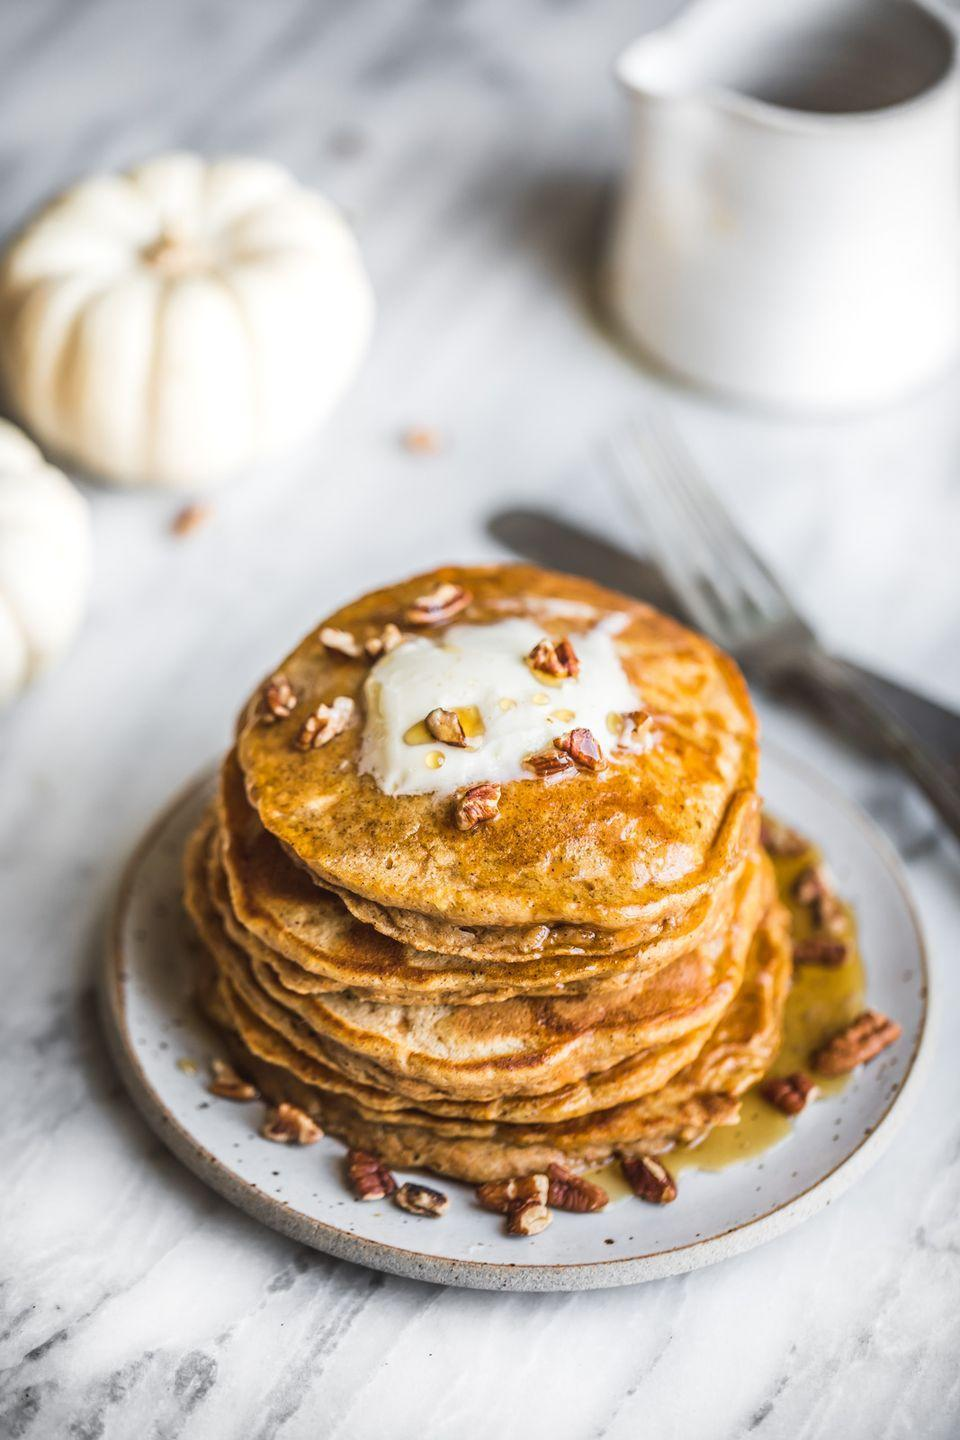 """<p>Sweeten up your morning with these flapjacks. A pat of putter, a sprinkle of pecans, and a drizzle of maple syrup is a yummy finish to this sweet potato recipe.</p><p><strong>Get the recipe at <a href=""""https://www.ambitiouskitchen.com/chai-spiced-sweet-potato-pancakes/"""" rel=""""nofollow noopener"""" target=""""_blank"""" data-ylk=""""slk:Ambitious Kitchen"""" class=""""link rapid-noclick-resp"""">Ambitious Kitchen</a>.</strong></p>"""